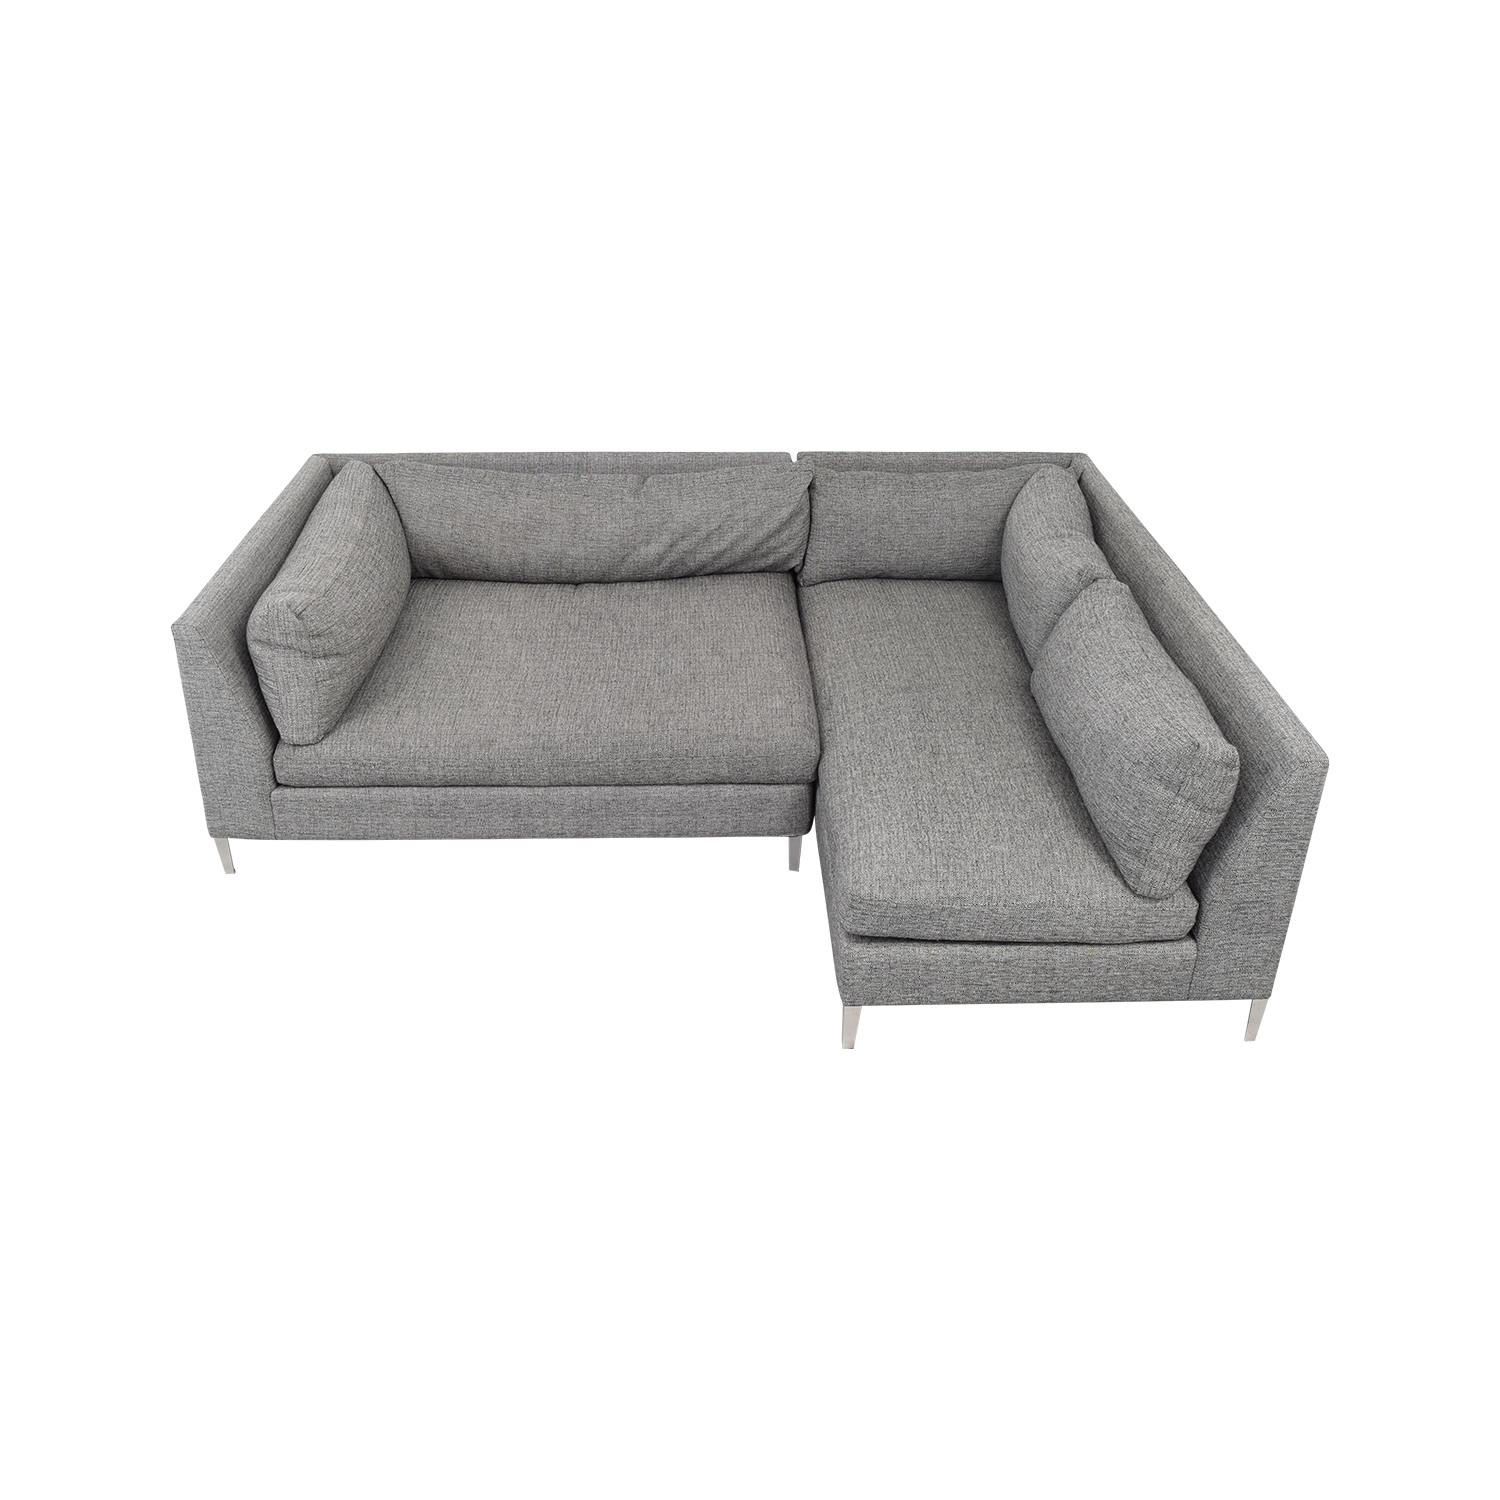 buy CB2 Two Piece Sectional Sofa with Chaise CB2 Sofas